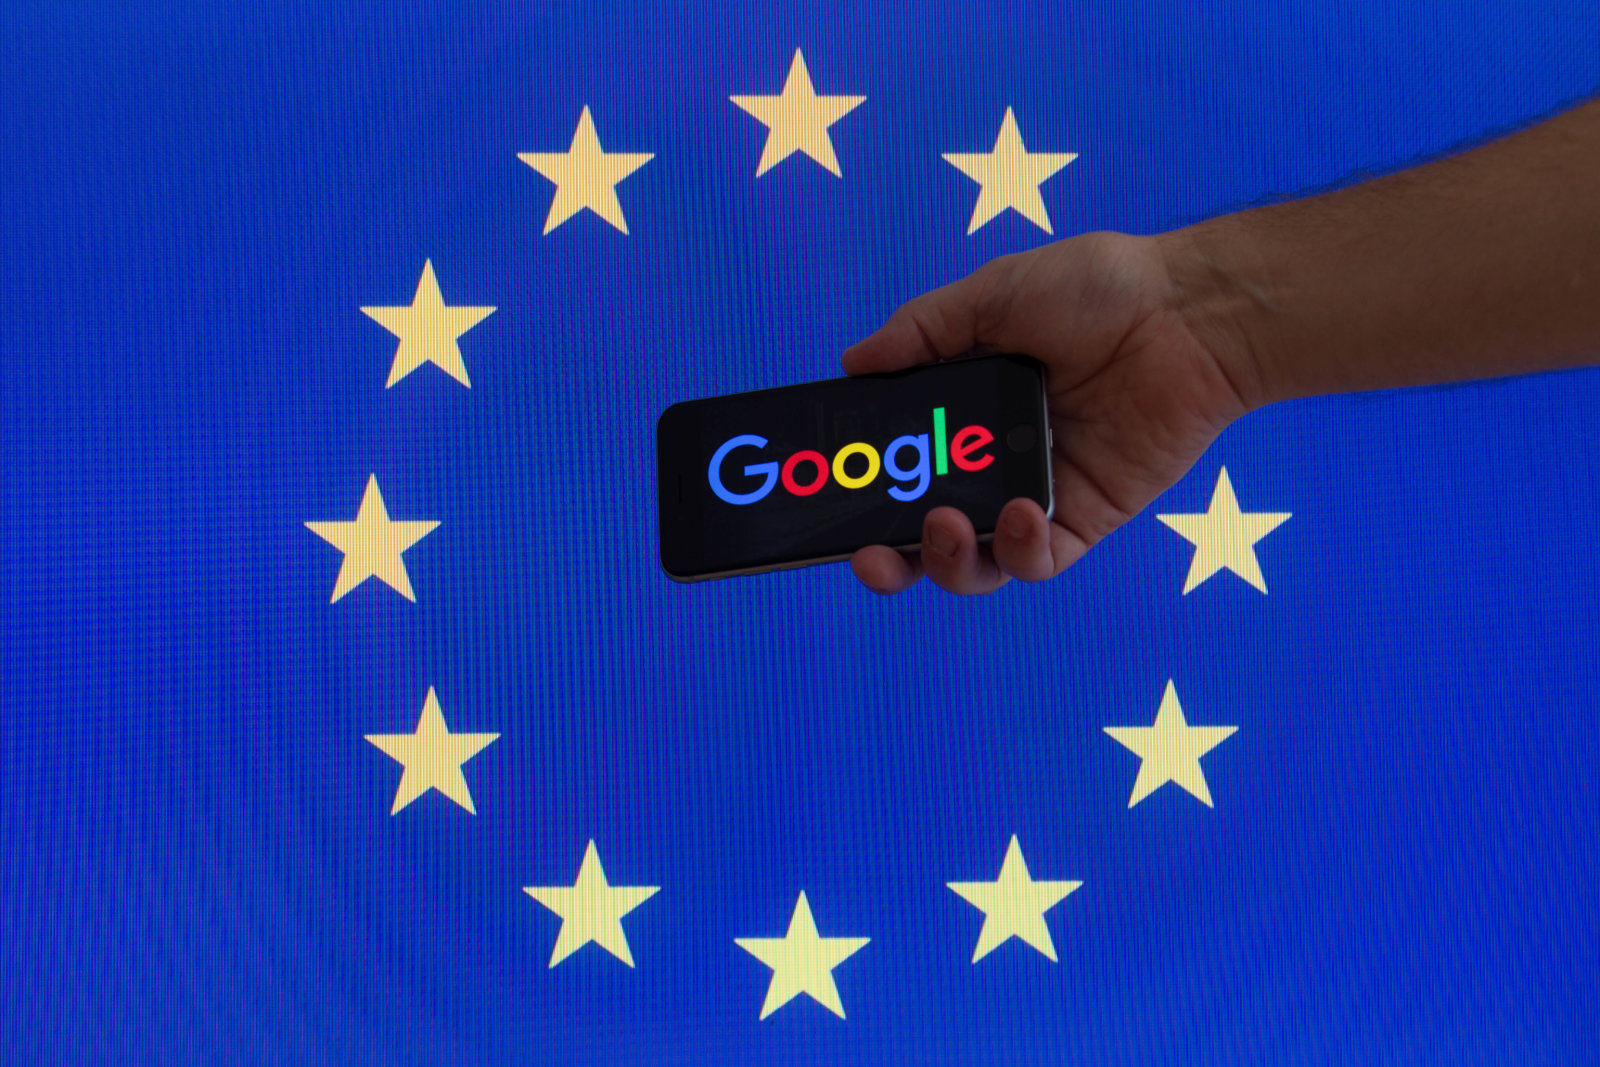 The EU flag is seen with Google logo. (Photo by Jaap Arriens/NurPhoto via Getty Images)